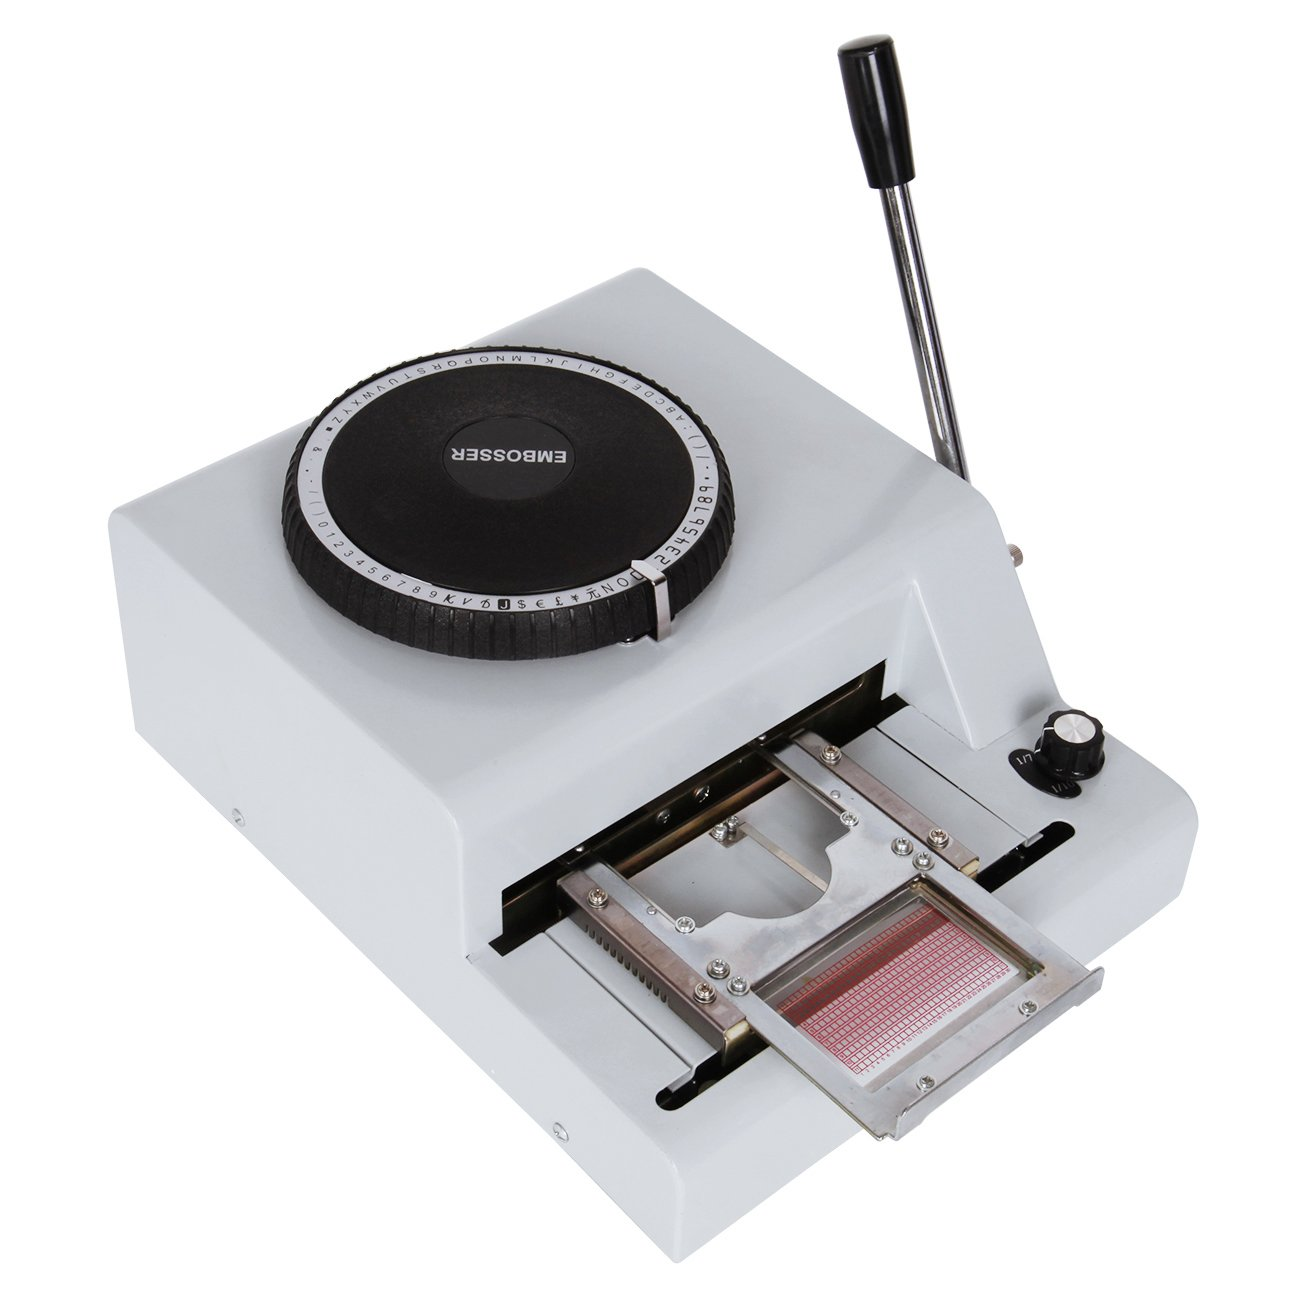 PanelTech 72 Letters PVC Manual VIP Credit Card Embossing Machine Embosser by PanelTech